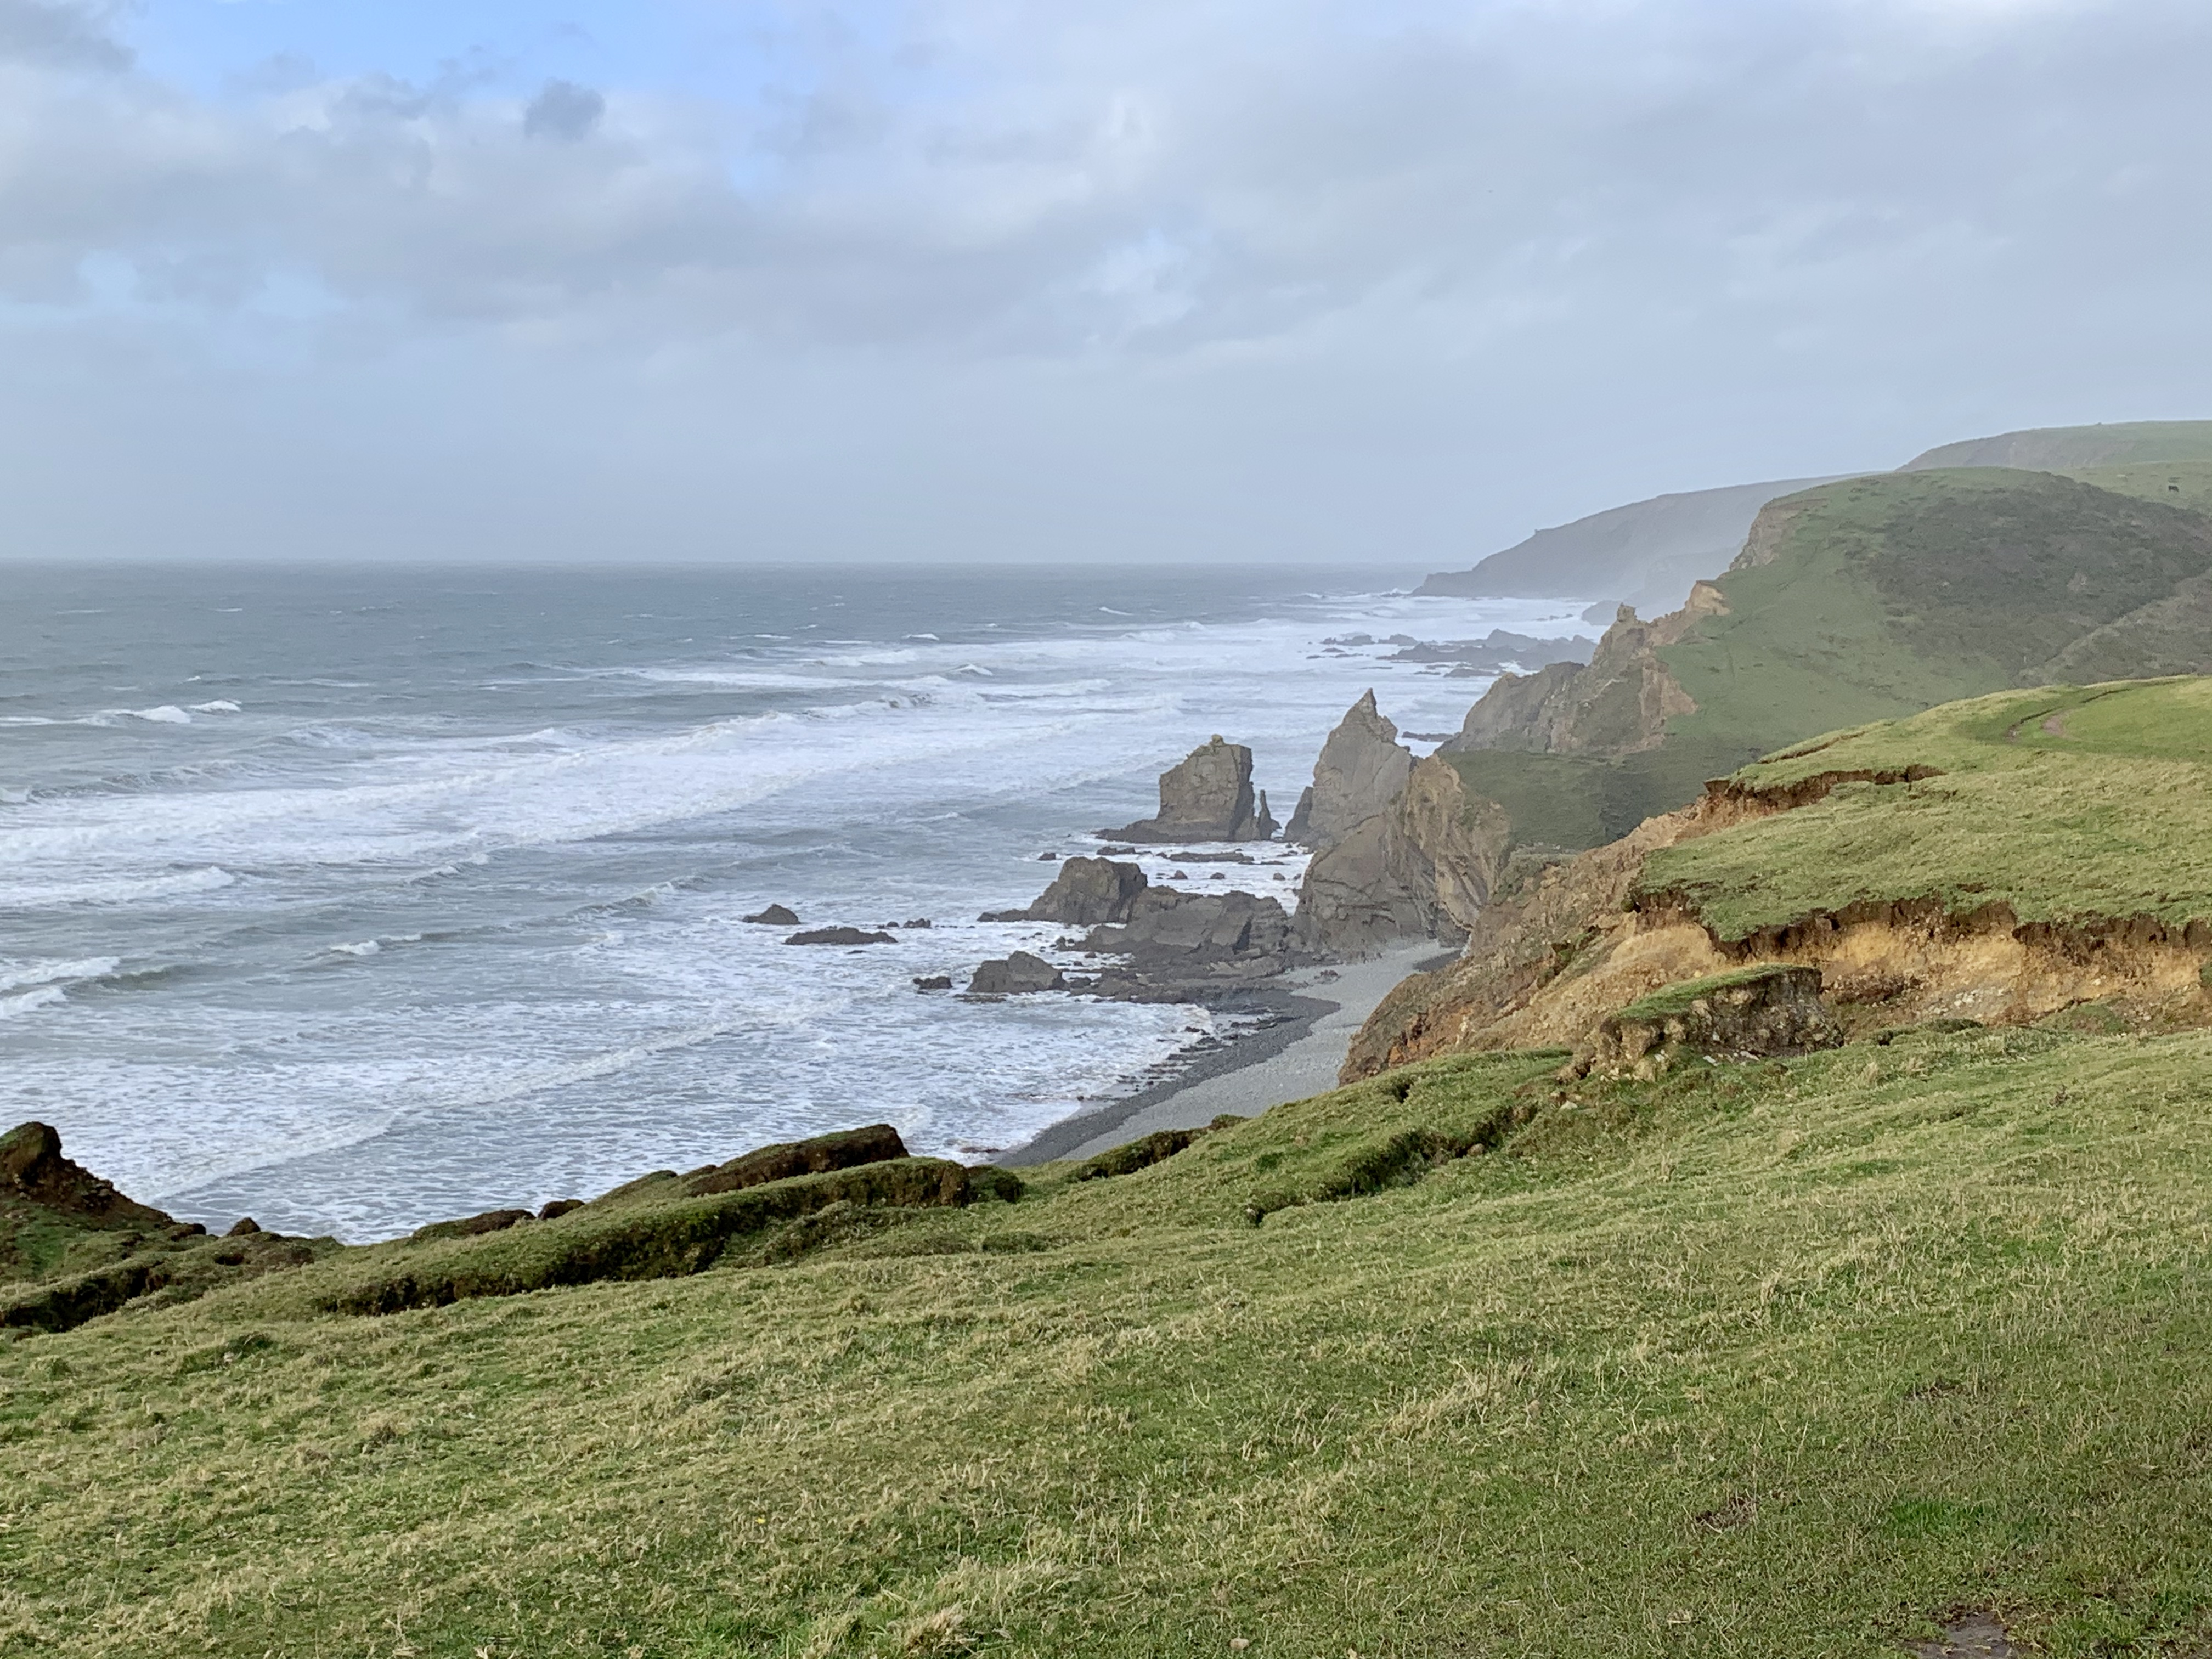 Stunning scenery right on our doorstep in the UK such as the South West Coast Path clifftop views when we choose a staycation over flying abroad